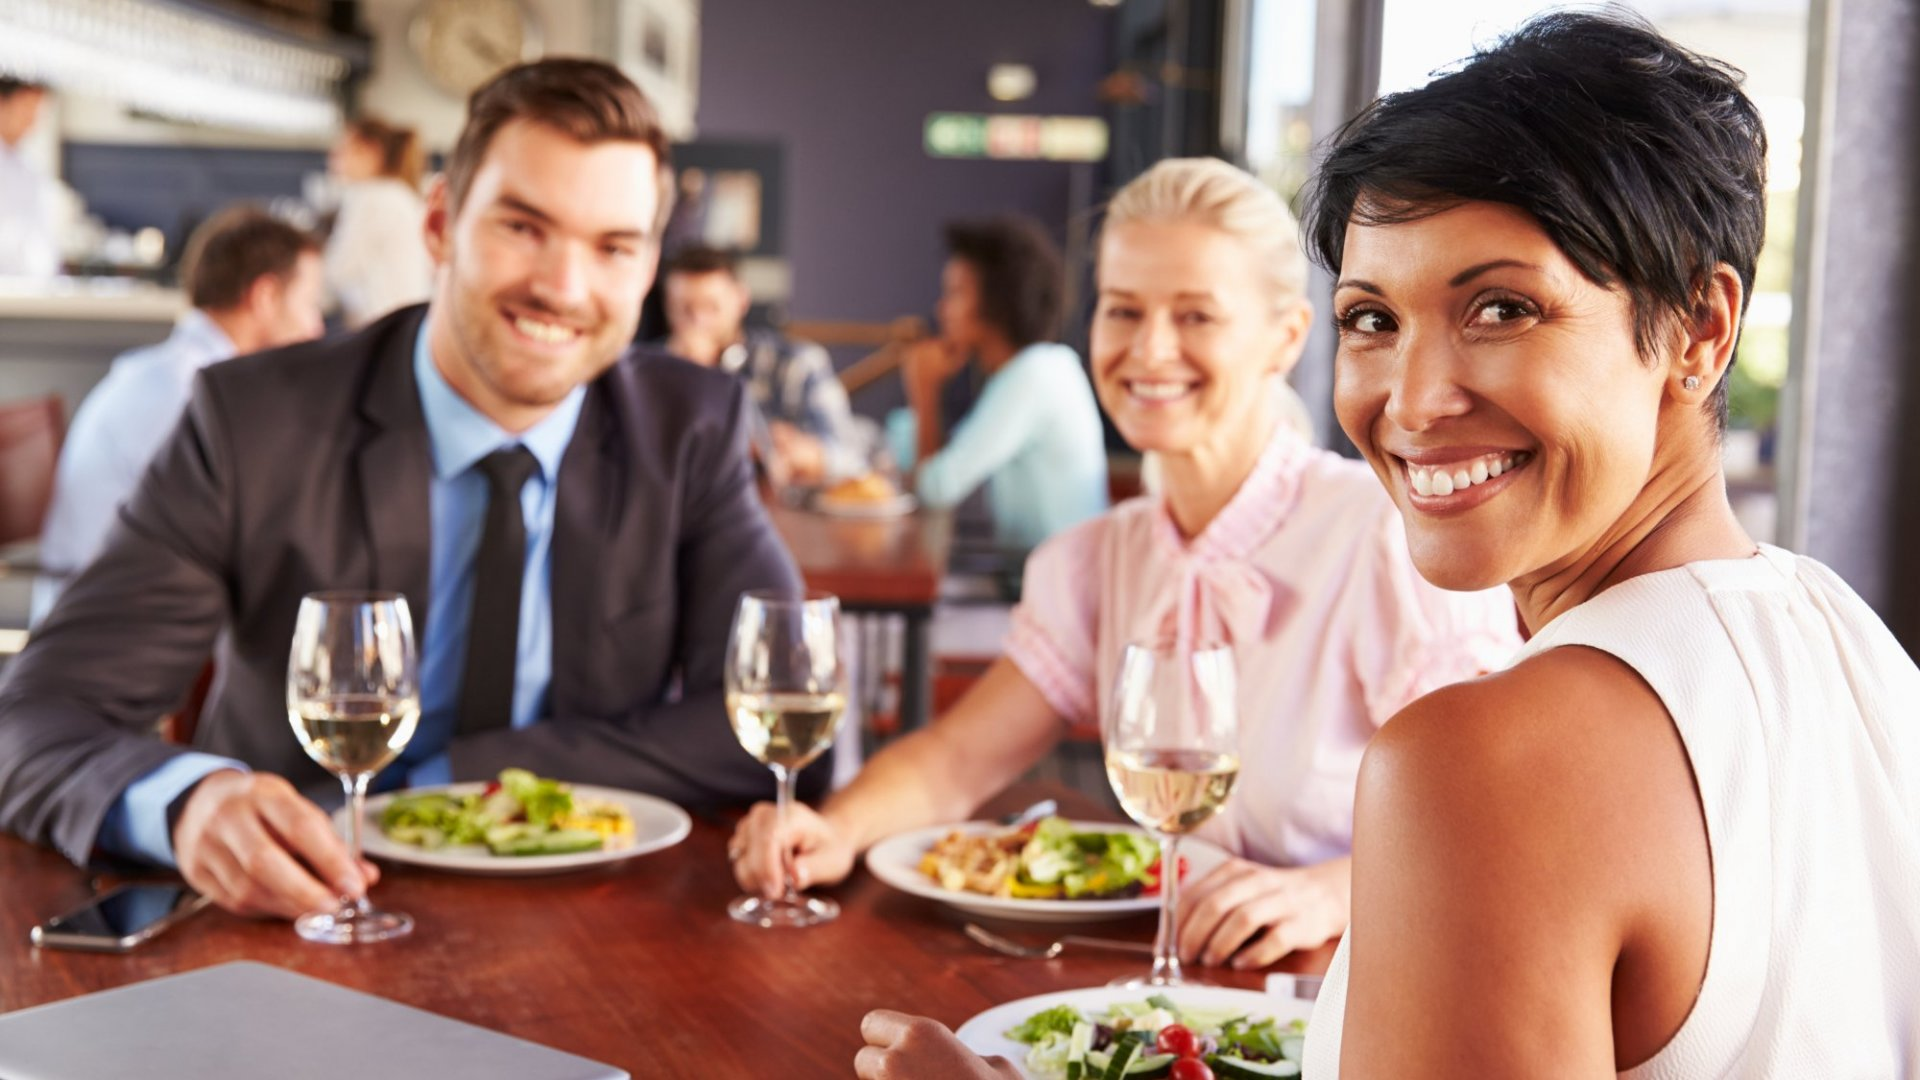 The Human Element: How Strong Relationships Lead to Business Success